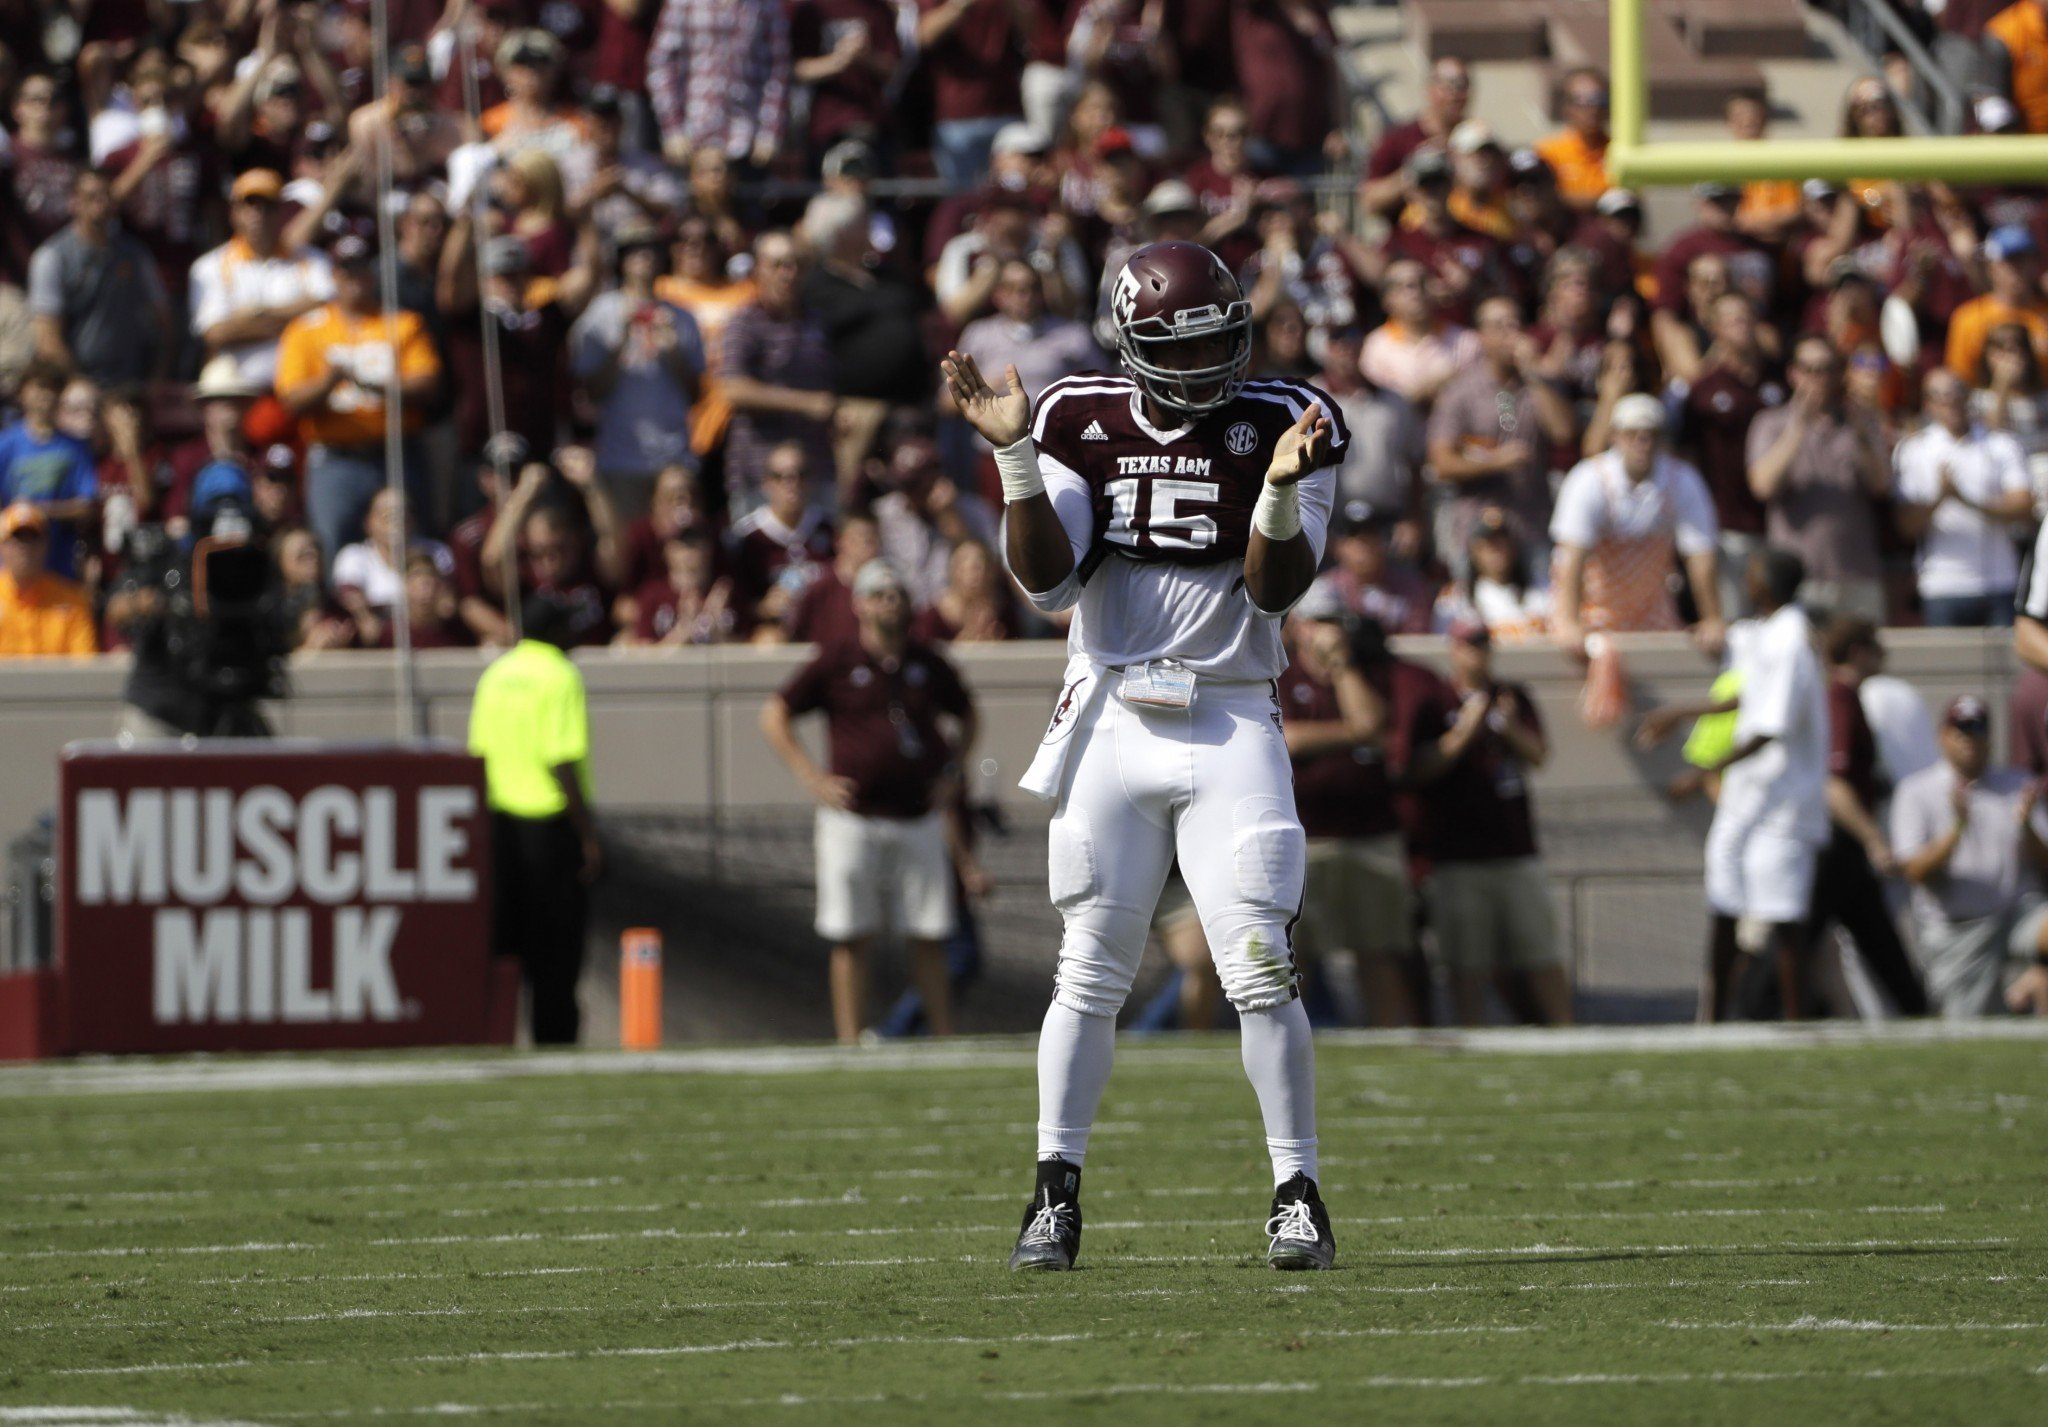 Texas A&M pass rusher Myles Garrett could be the top pick in the 2017 NFL draft. (AP)